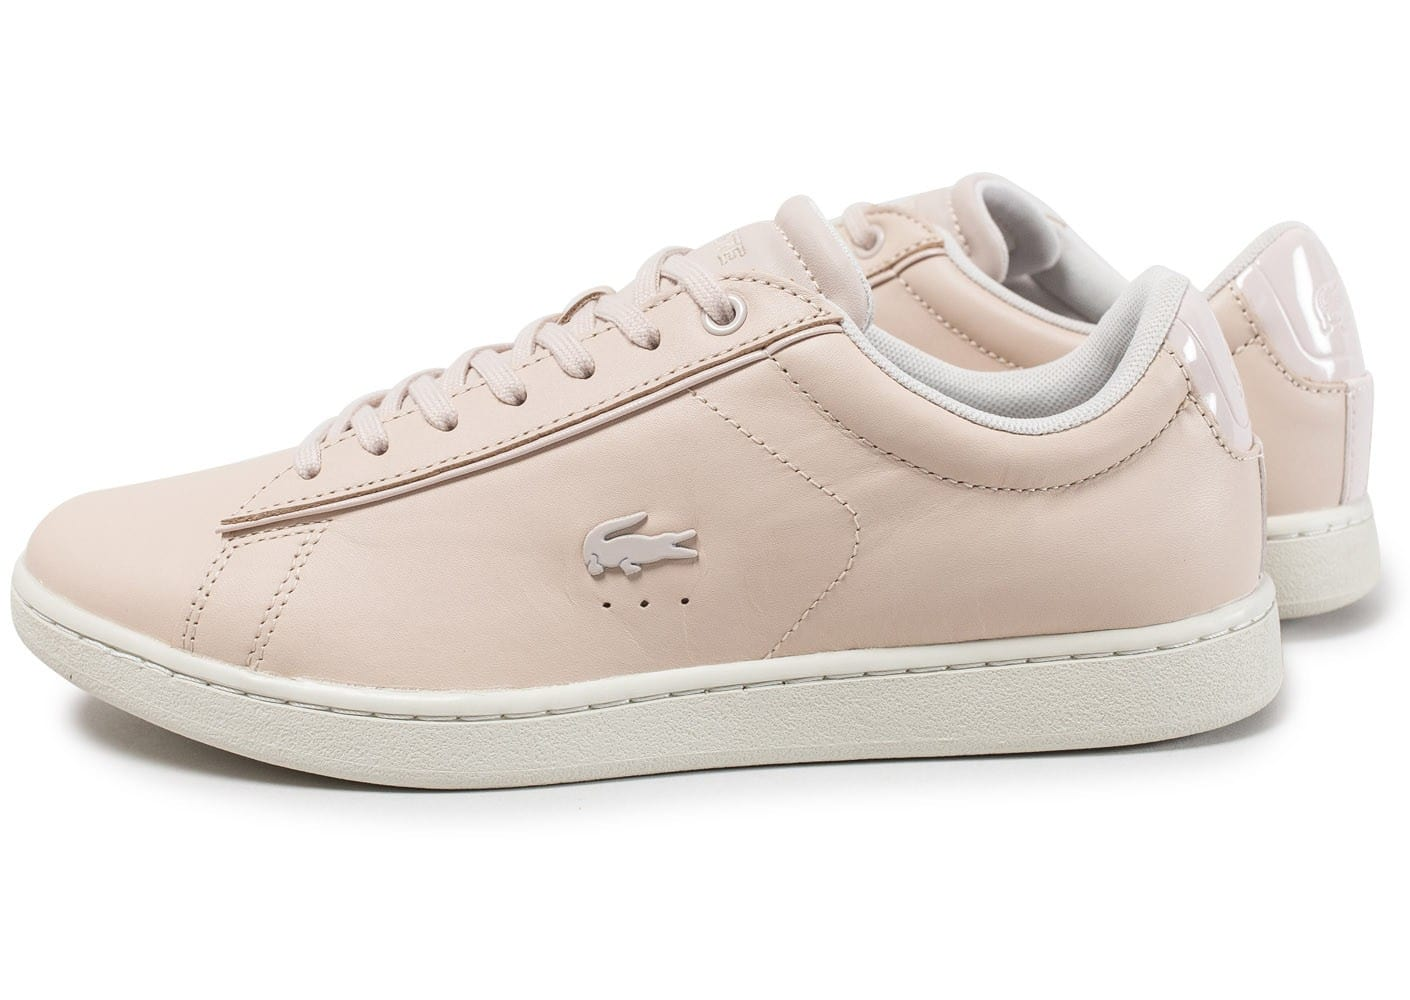 Lacoste carnaby evo 417 w rose chaussures femme chausport - Lacoste carnaby evo cls baskets en cuir perfore ...